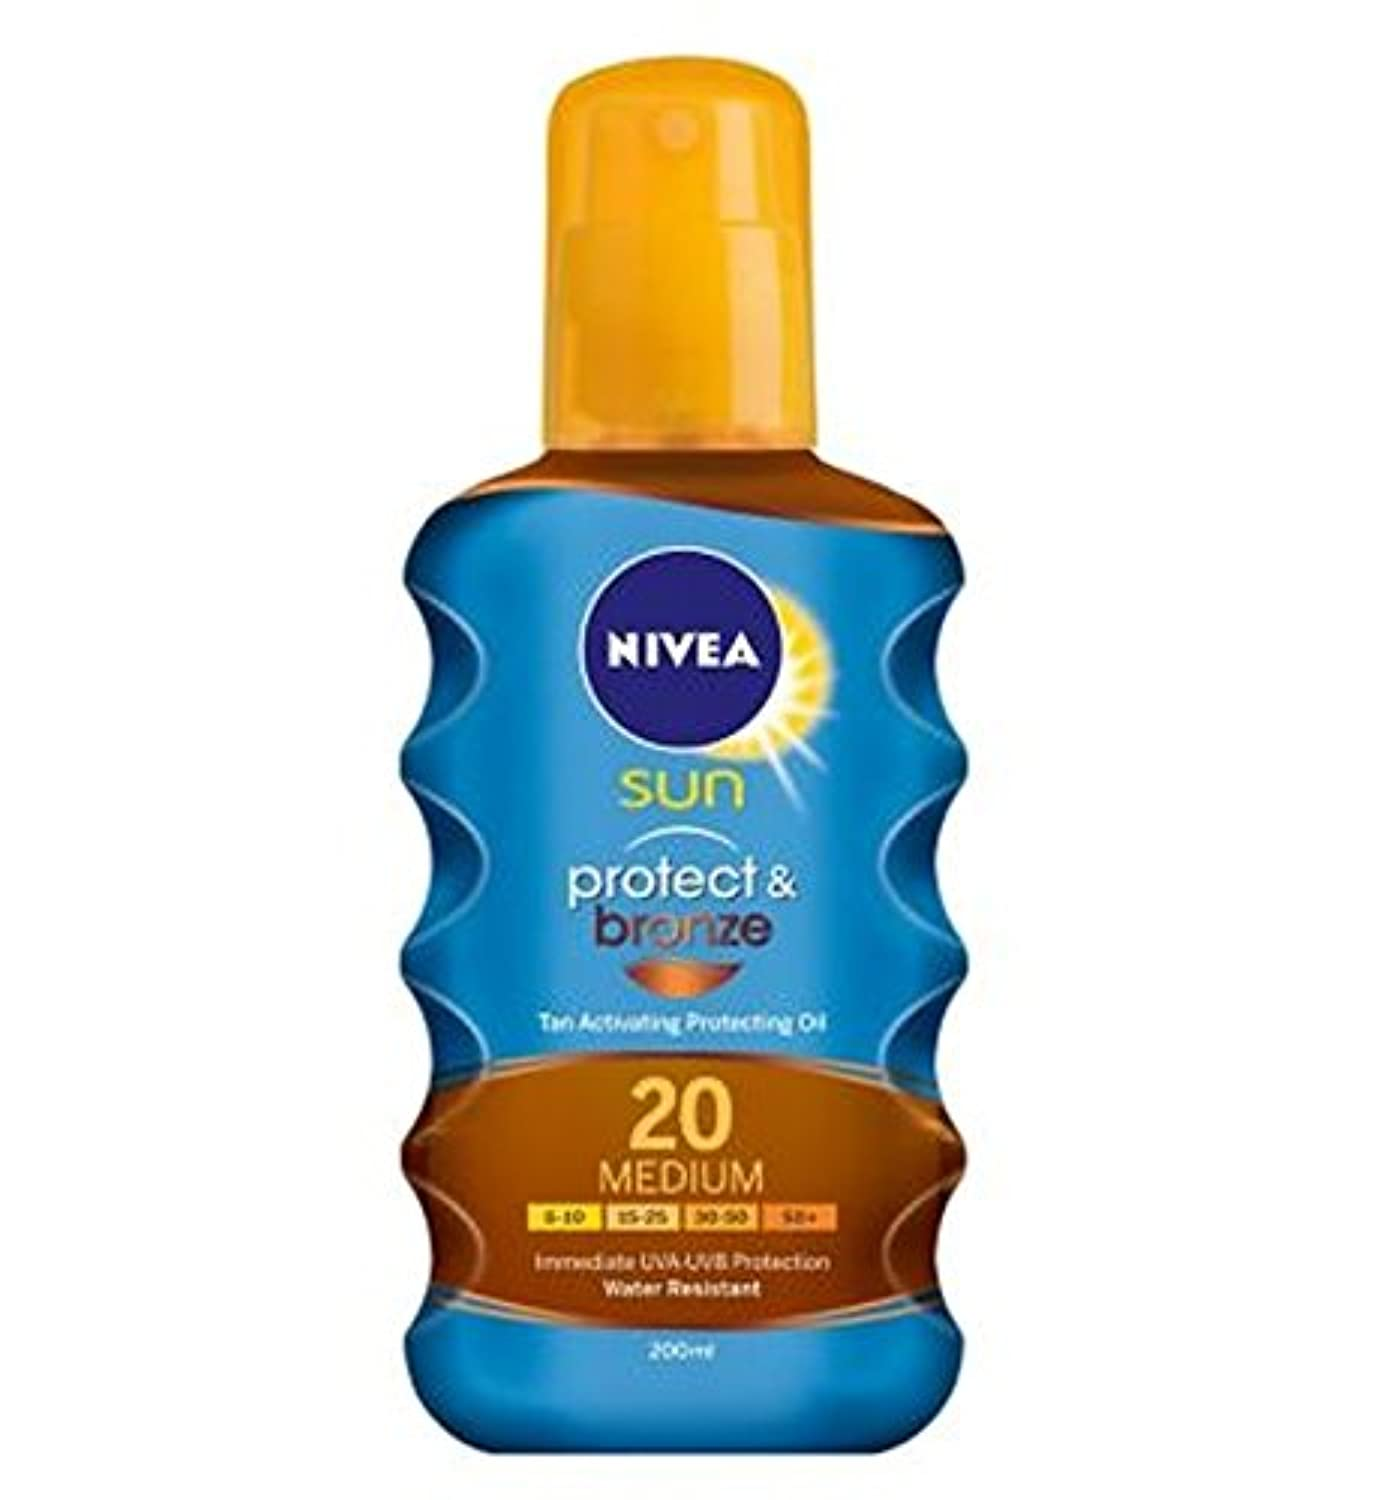 NIVEA SUN Protect & Bronze Tan Activating Protecting Oil 20 Medium 200ml - ニベアの日は、油媒体20 200ミリリットルを保護する日焼け活性化を保護...